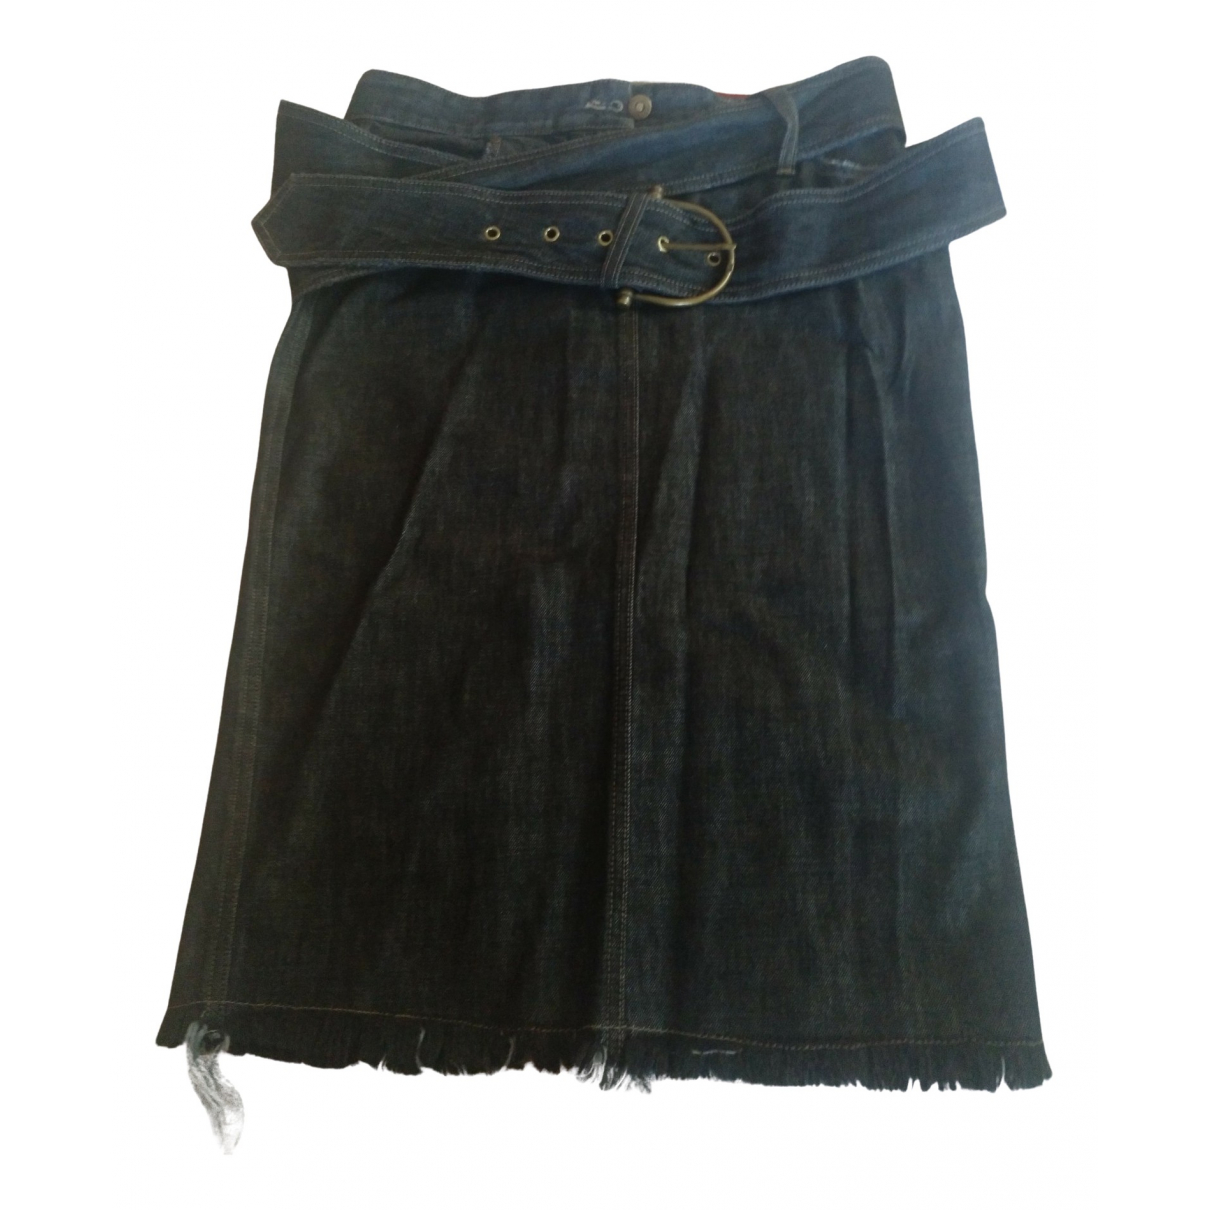 Alexander Mcqueen \N Navy Denim - Jeans skirt for Women 44 IT